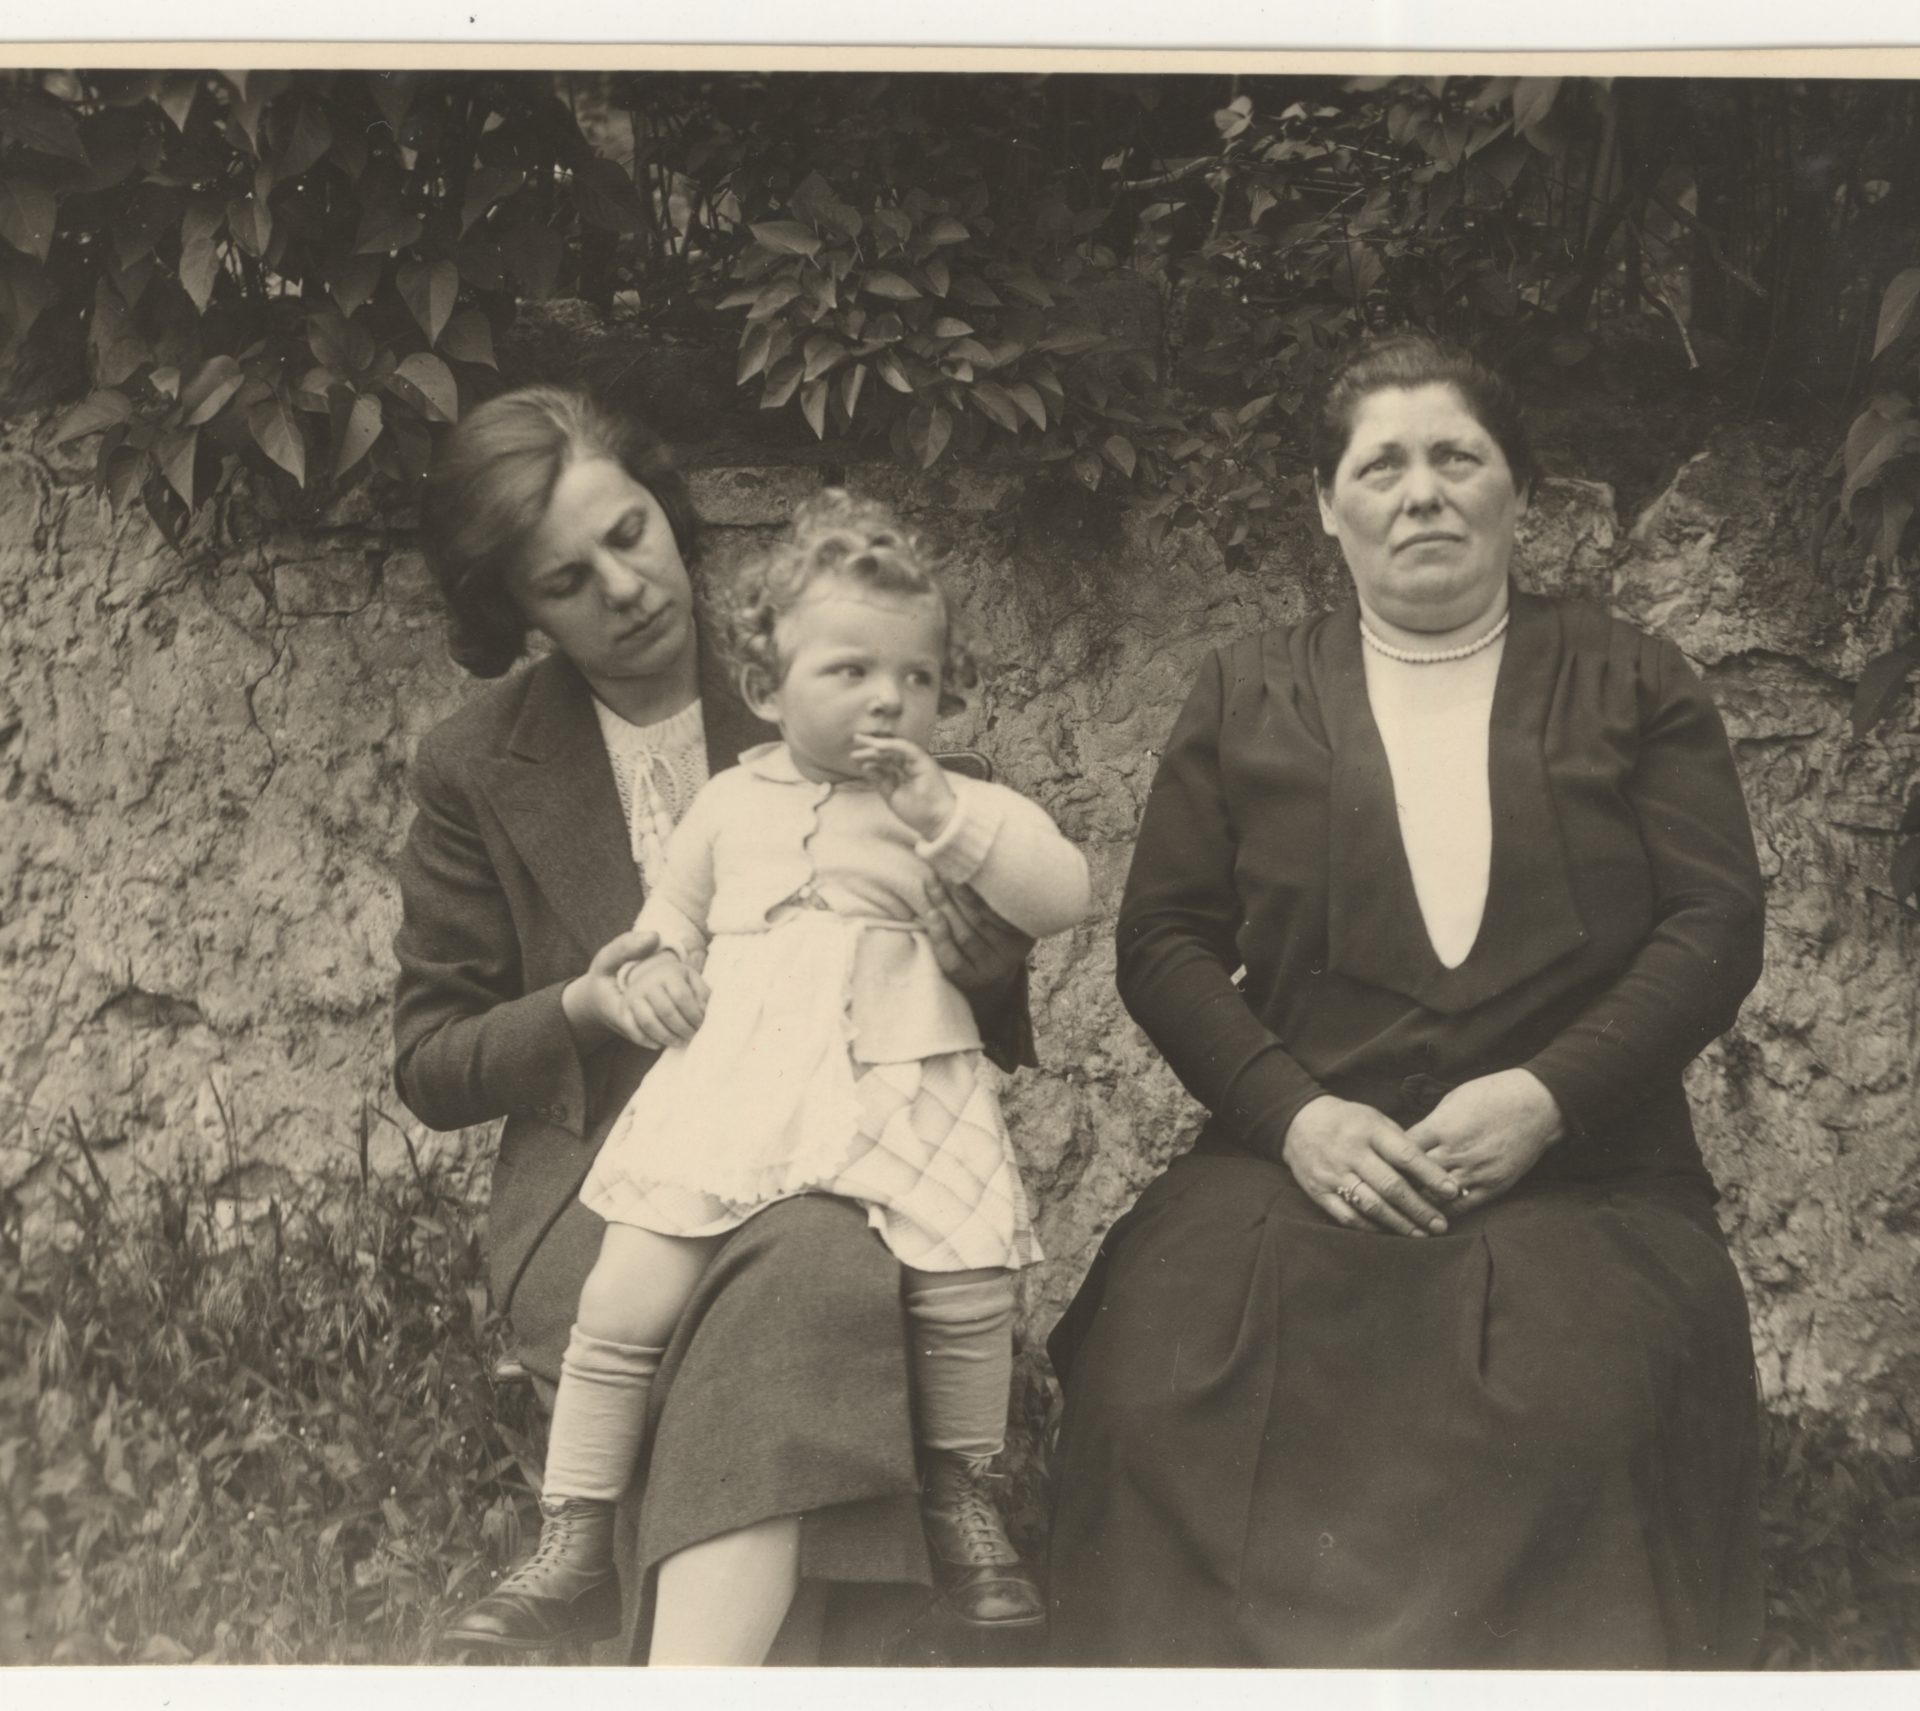 Erika holds Karen on her lap, with her mother Berta sitting to their left. This photograph was taken in Berlin in 1936.